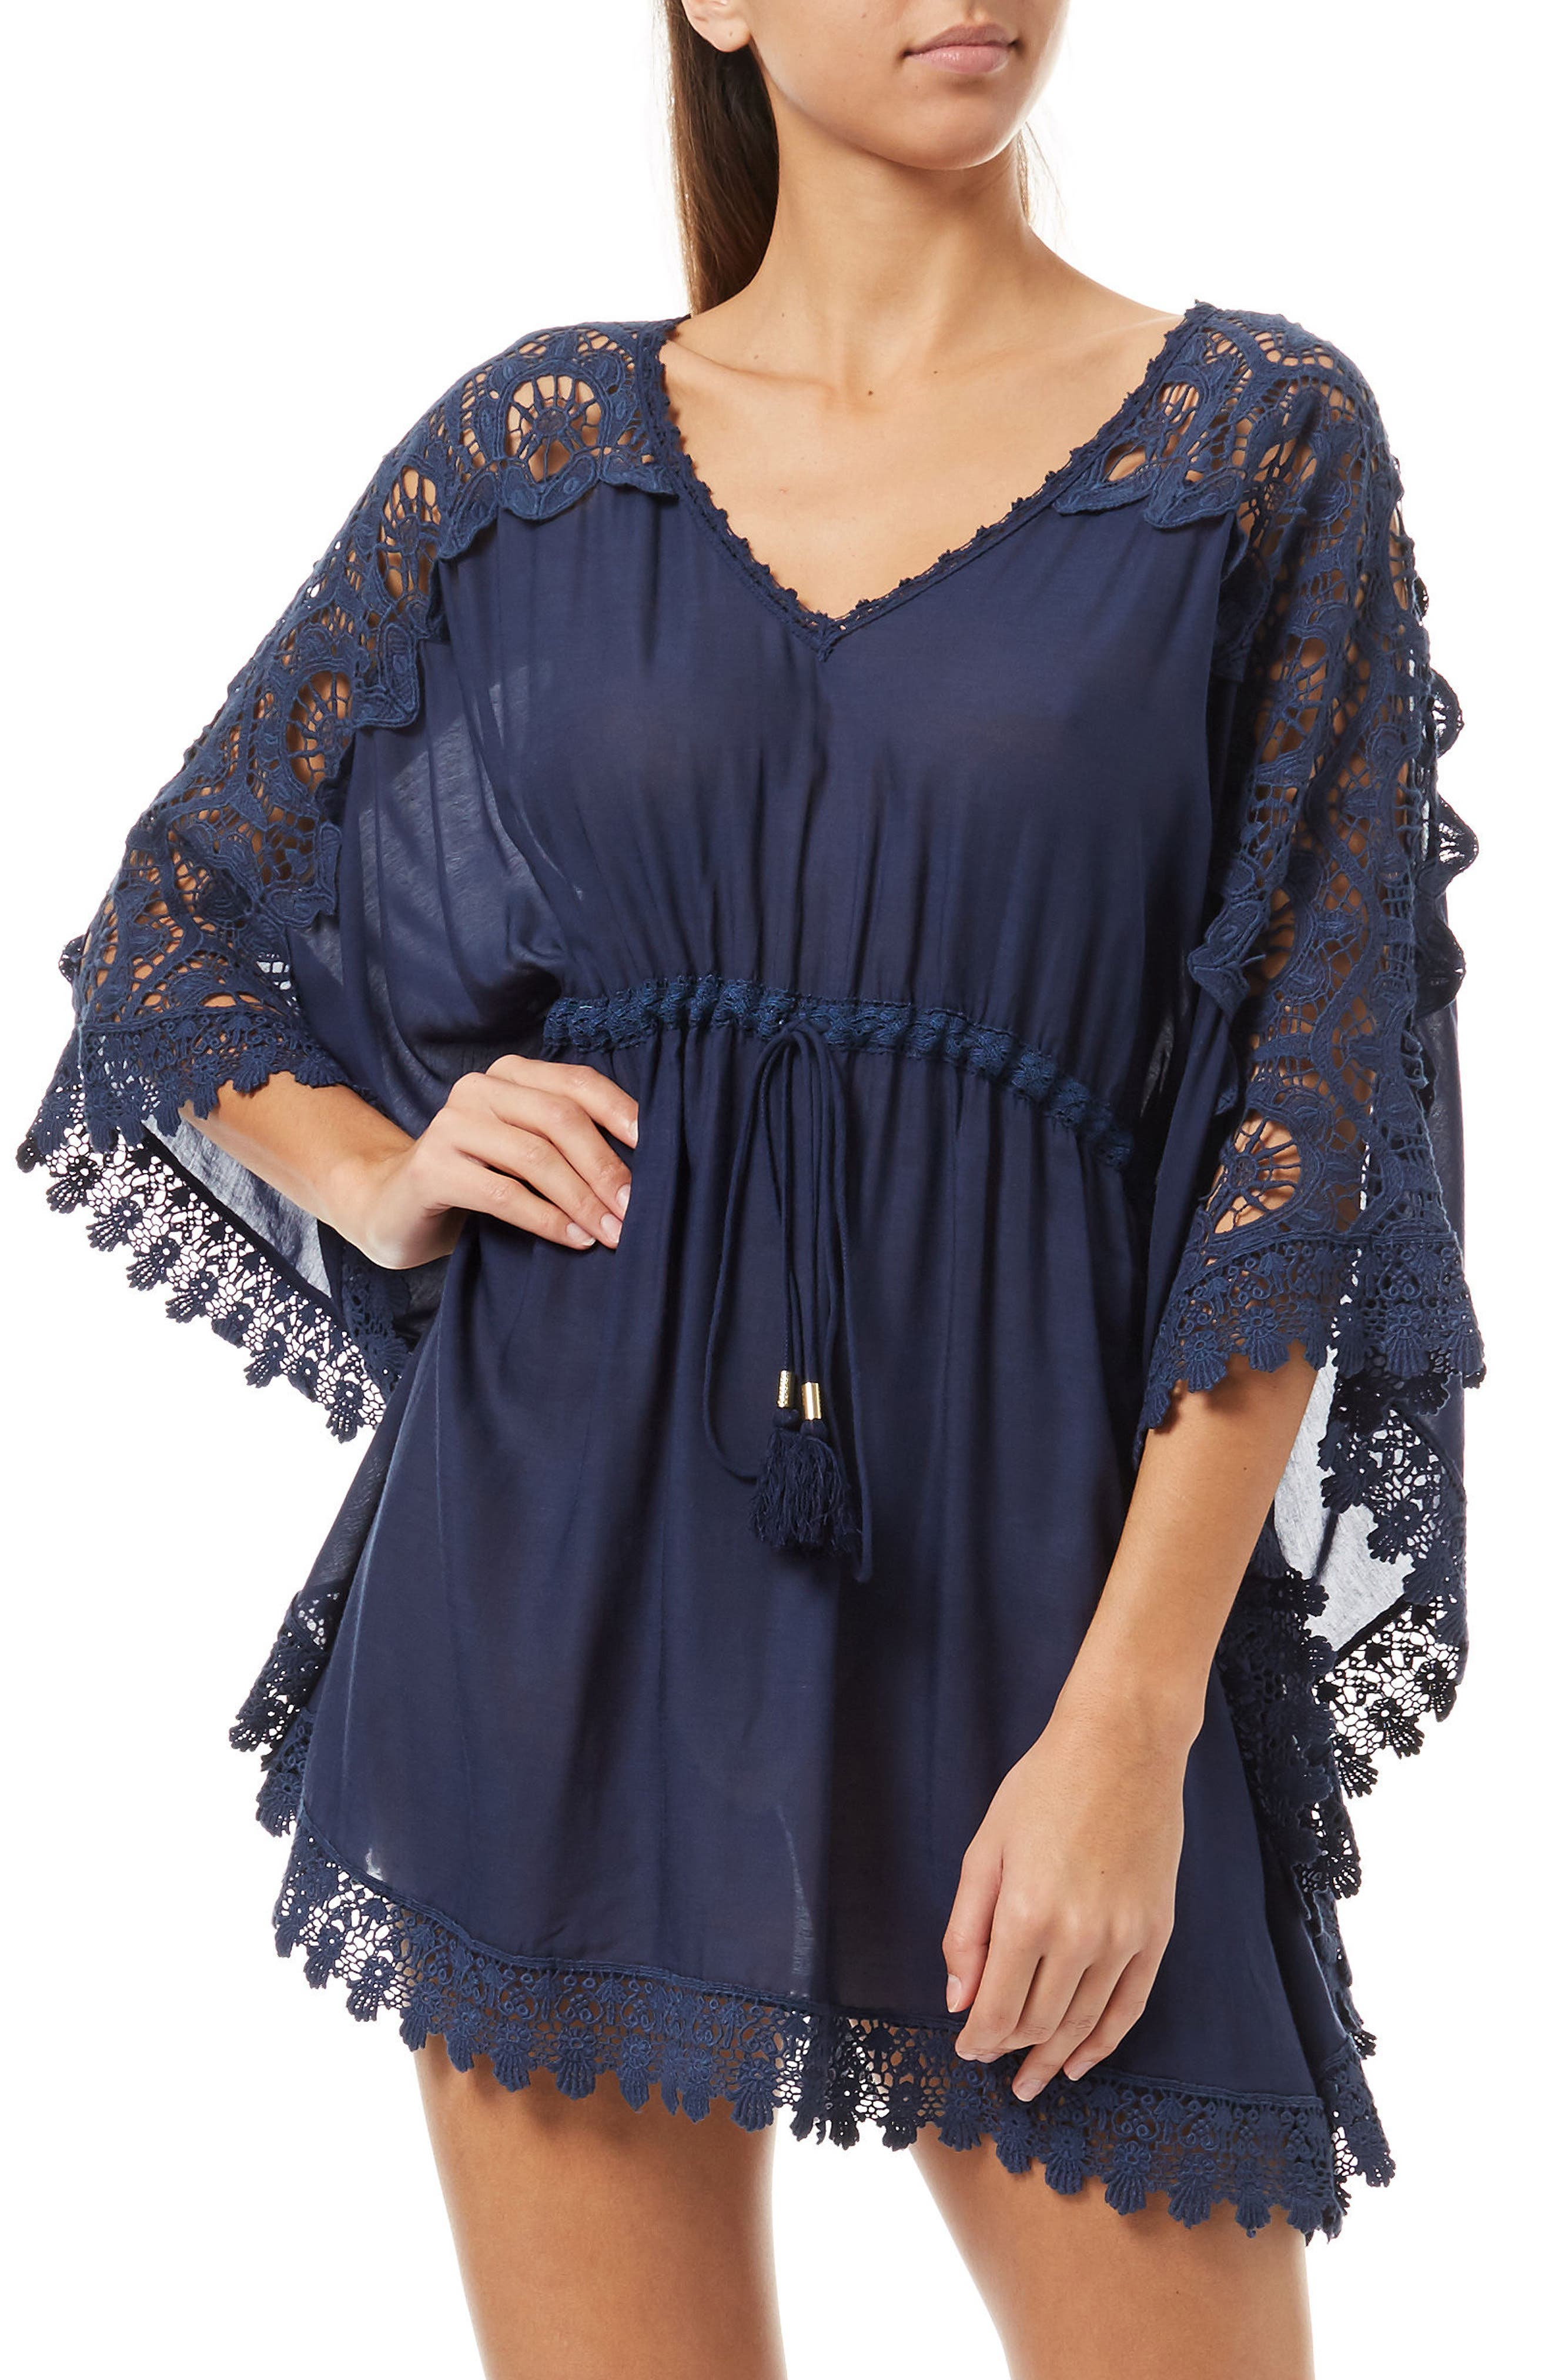 Roby Cover-Up Dress,                         Main,                         color, Navy